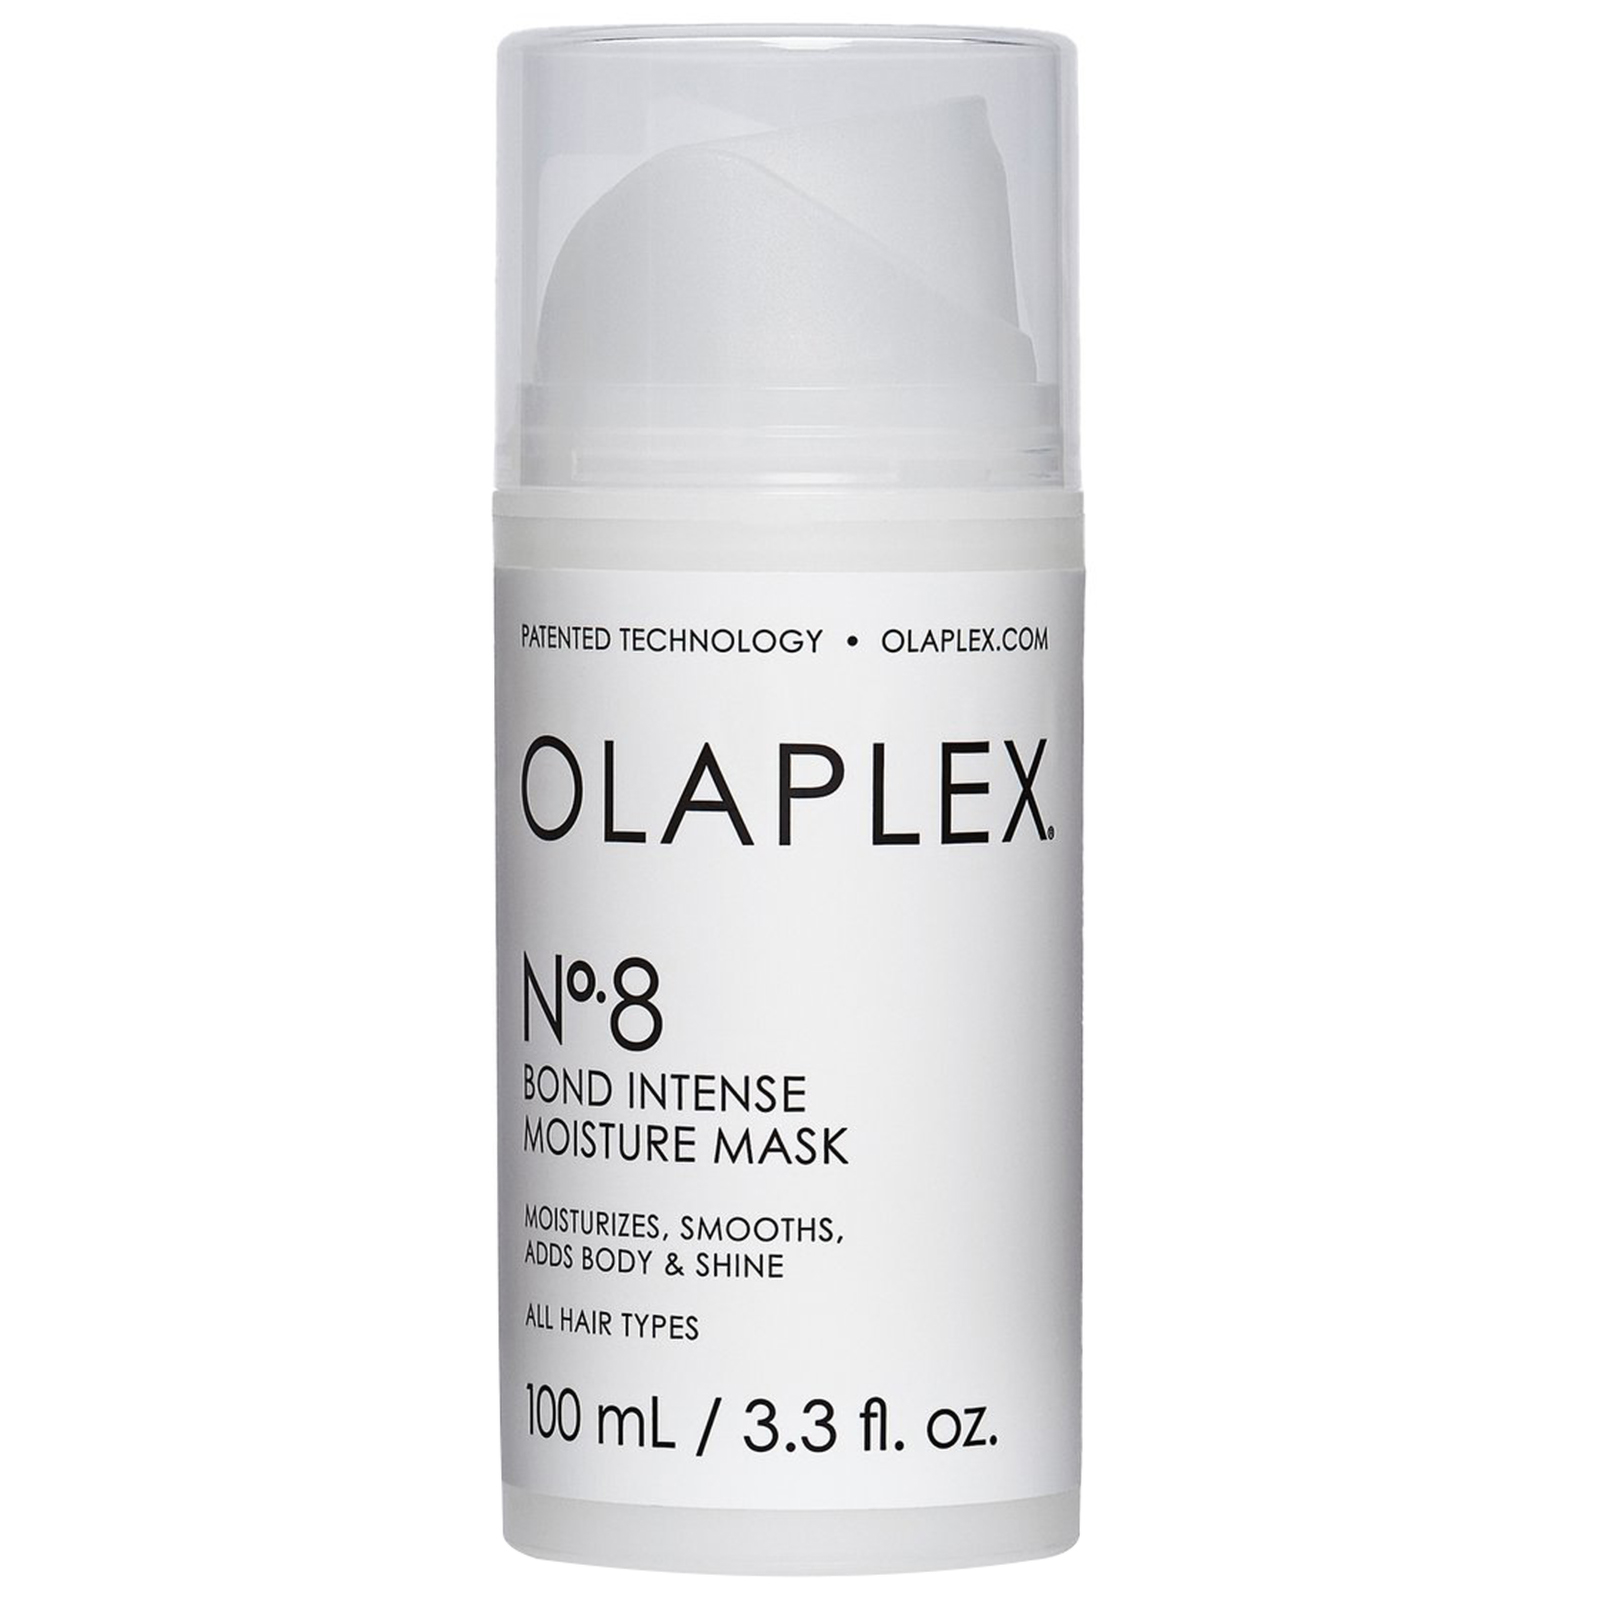 Olaplex Treatment No.8 键强湿性面膜 100ml